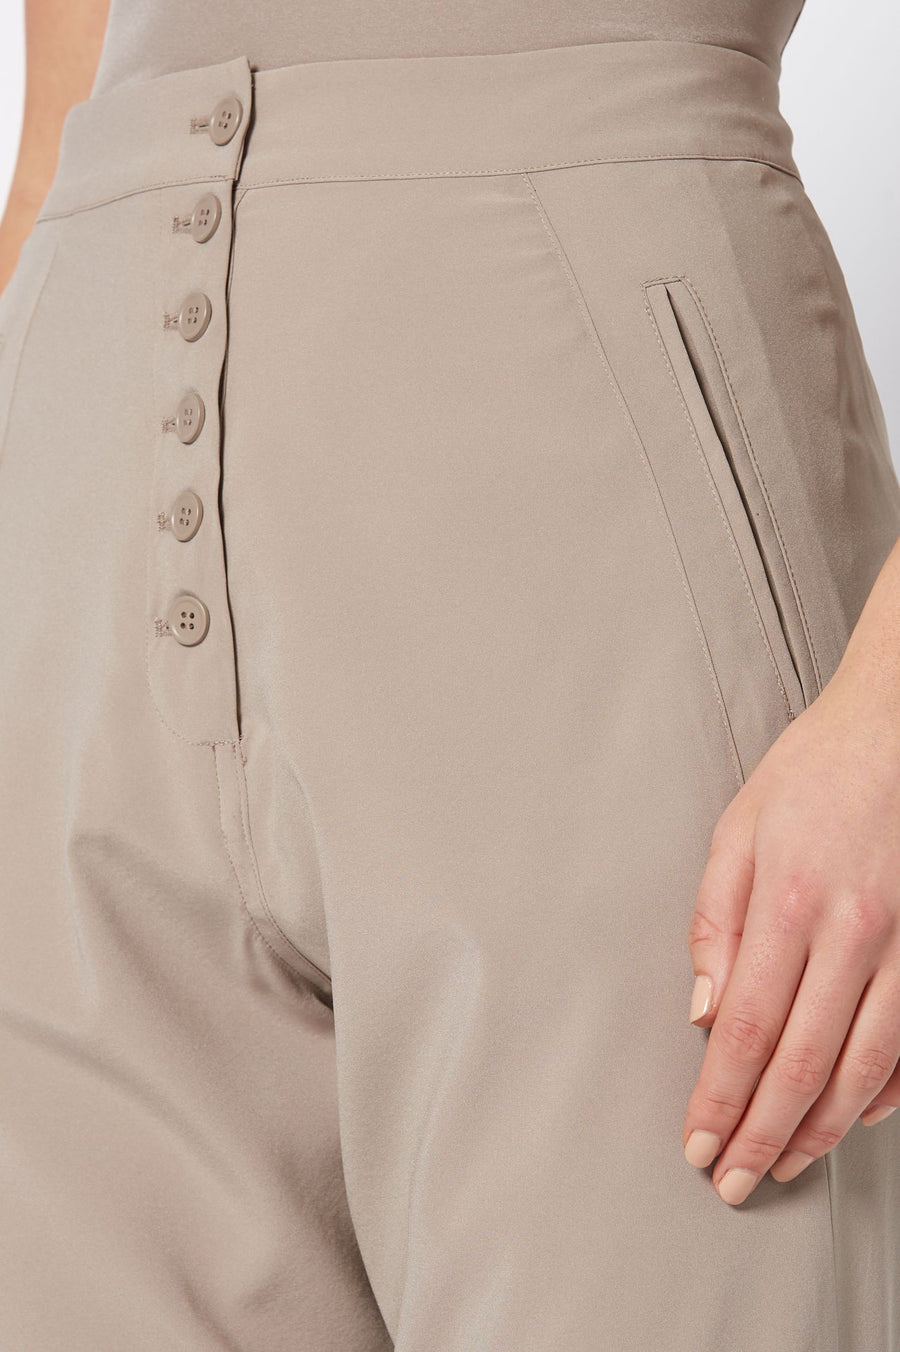 Silk Low Rise Button Pant, relaxed fit, elastic waist, dropped crotch, slanted pockets with button fastenings, color clay